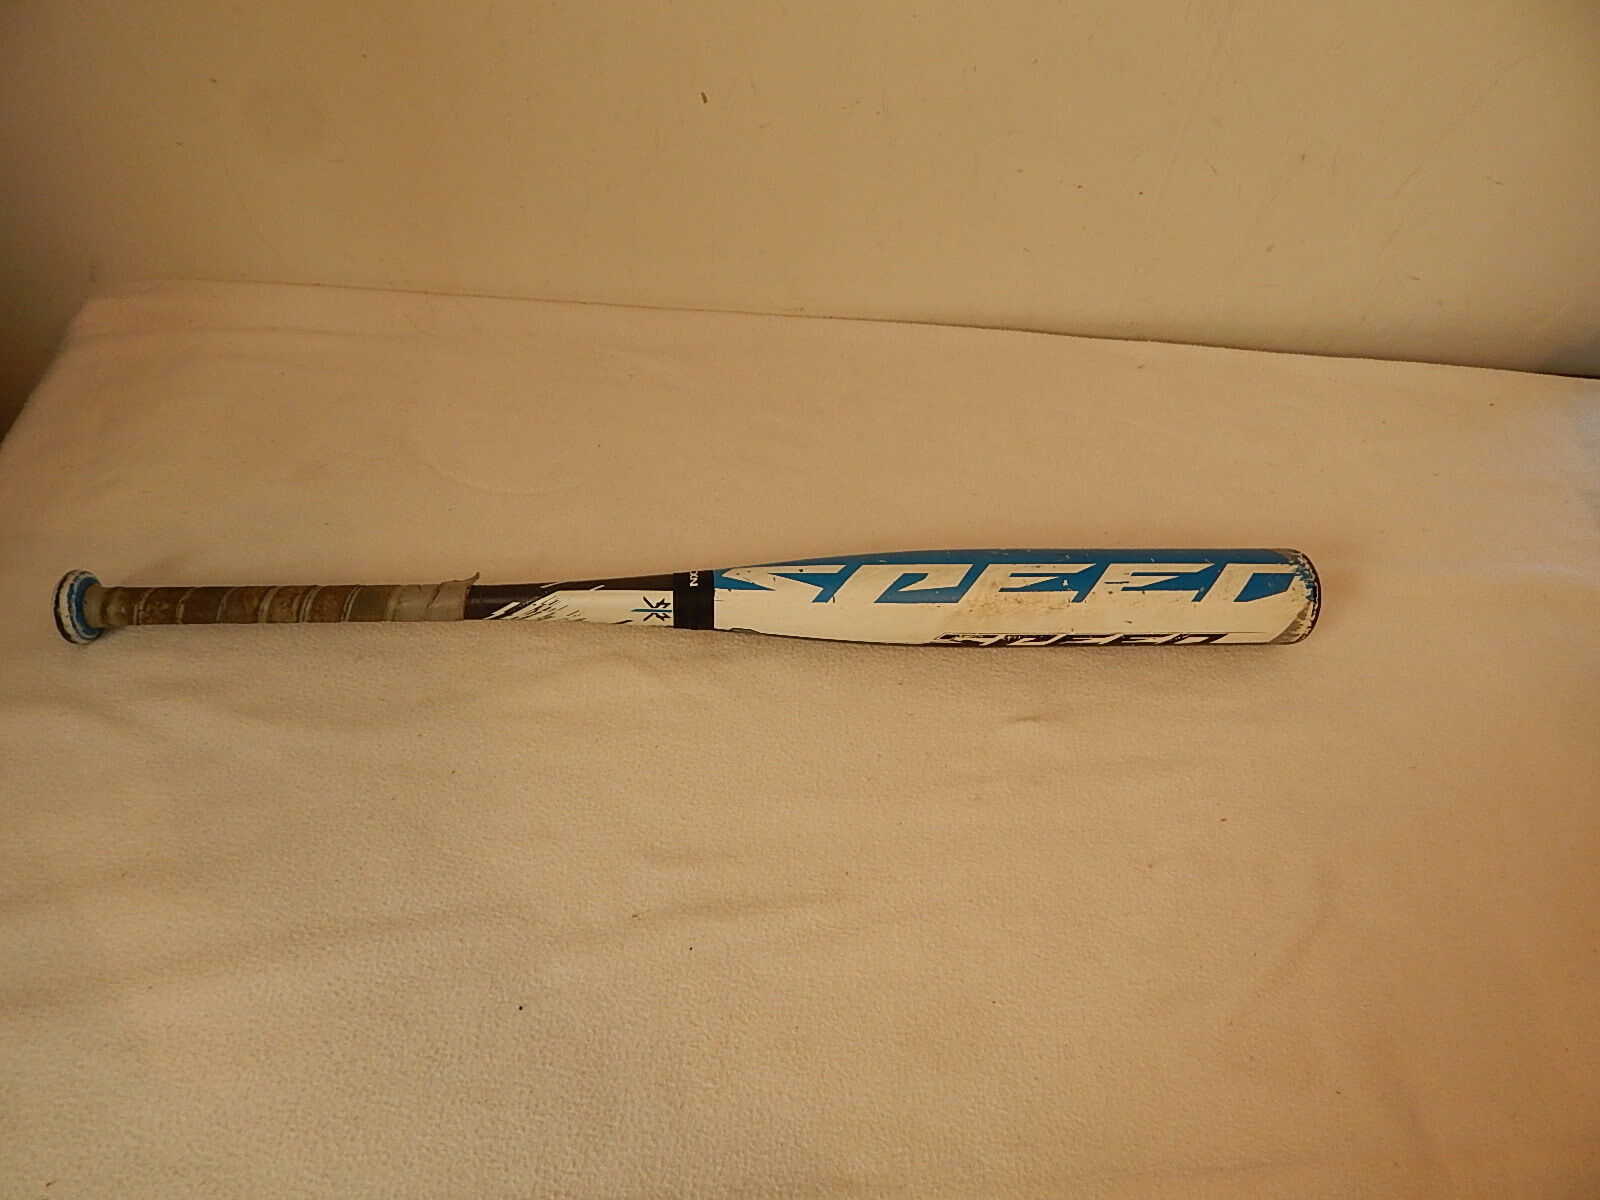 Easton Baseball Bat 31 in 21 oz. BSS13XL SPEED Stealth Sweet spot -10